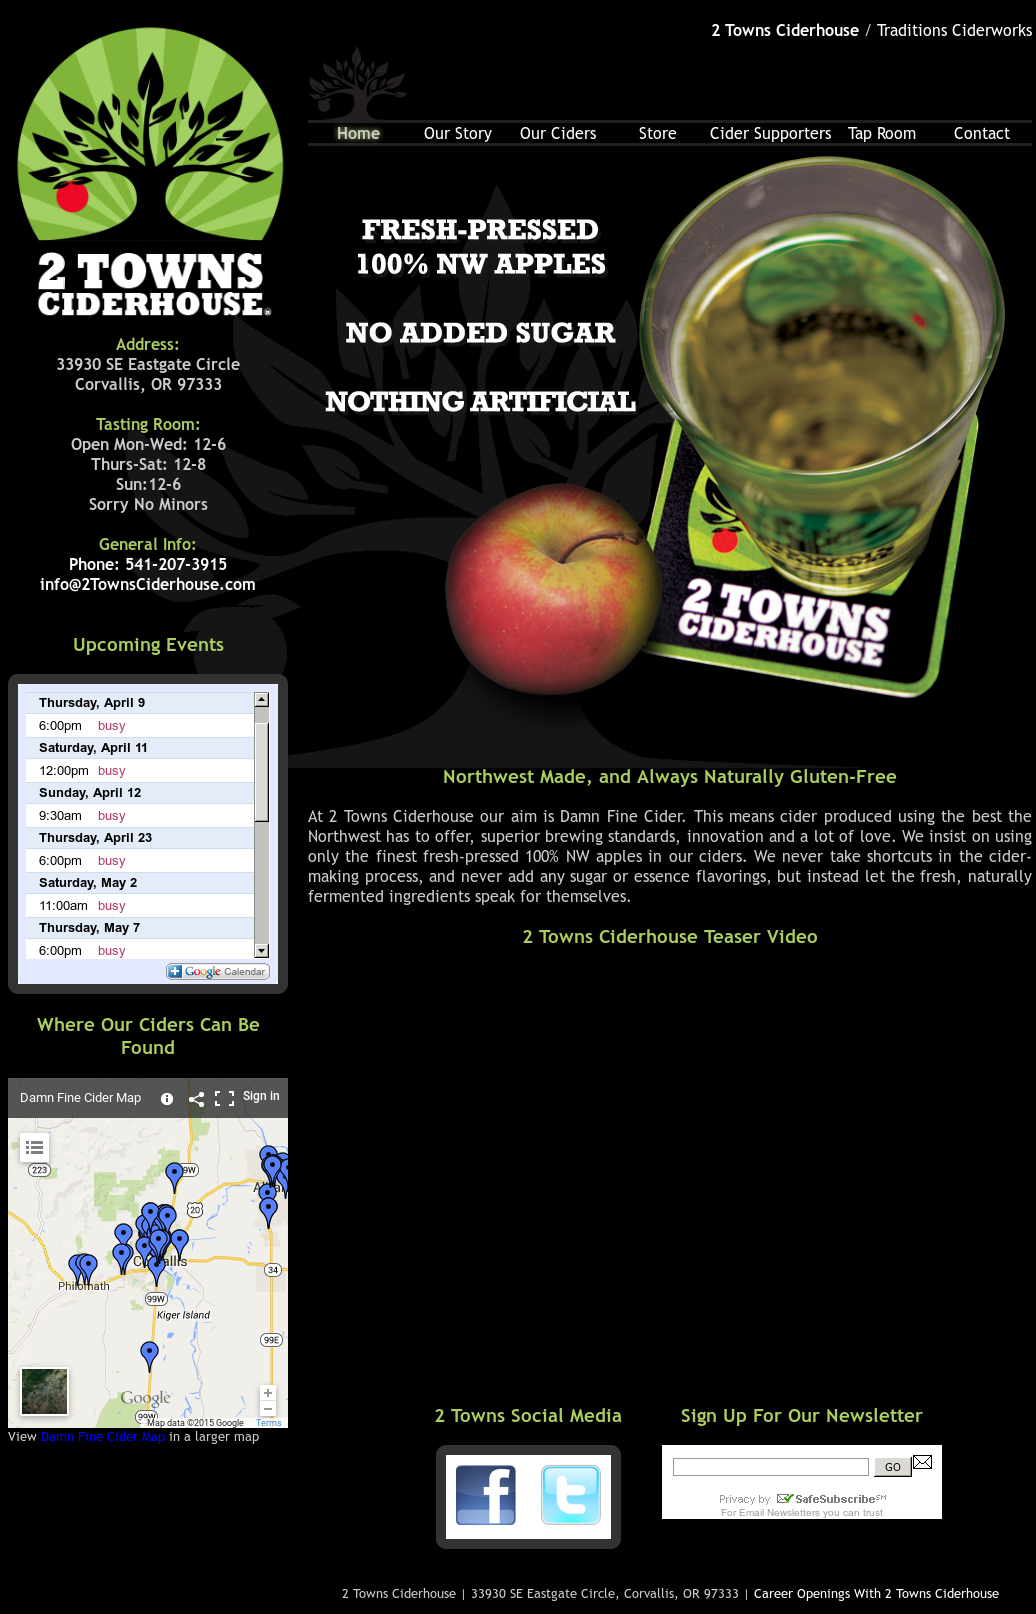 2 Towns Ciderhouse Competitors, Revenue and Employees